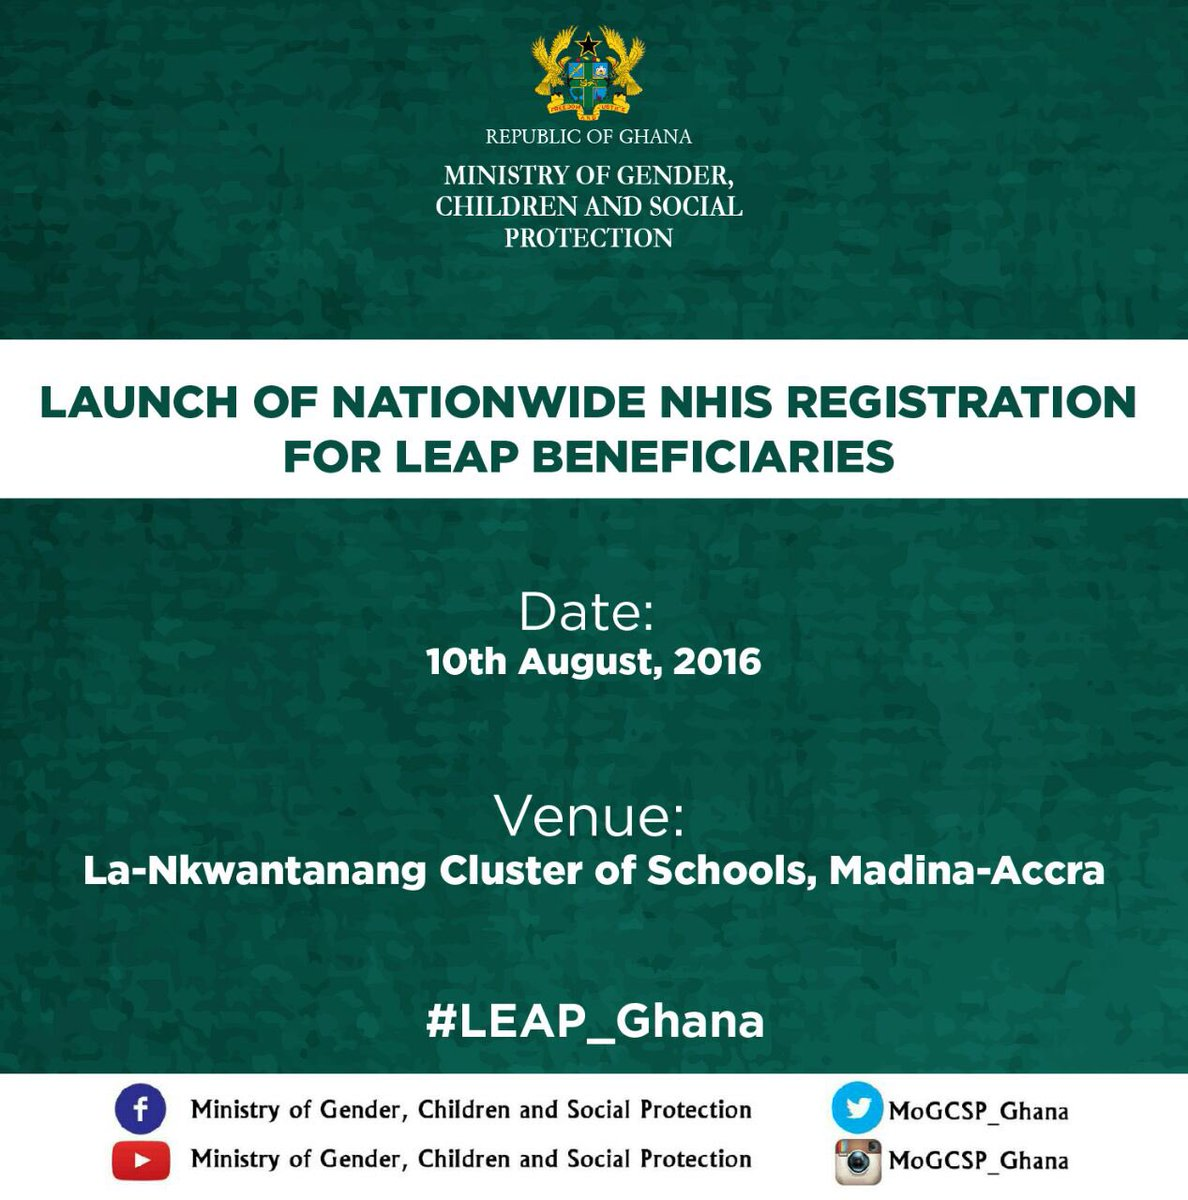 Today, we are launching the Nationwide Registration of LEAP beneficiaries unto the National Health Insurance Scheme.